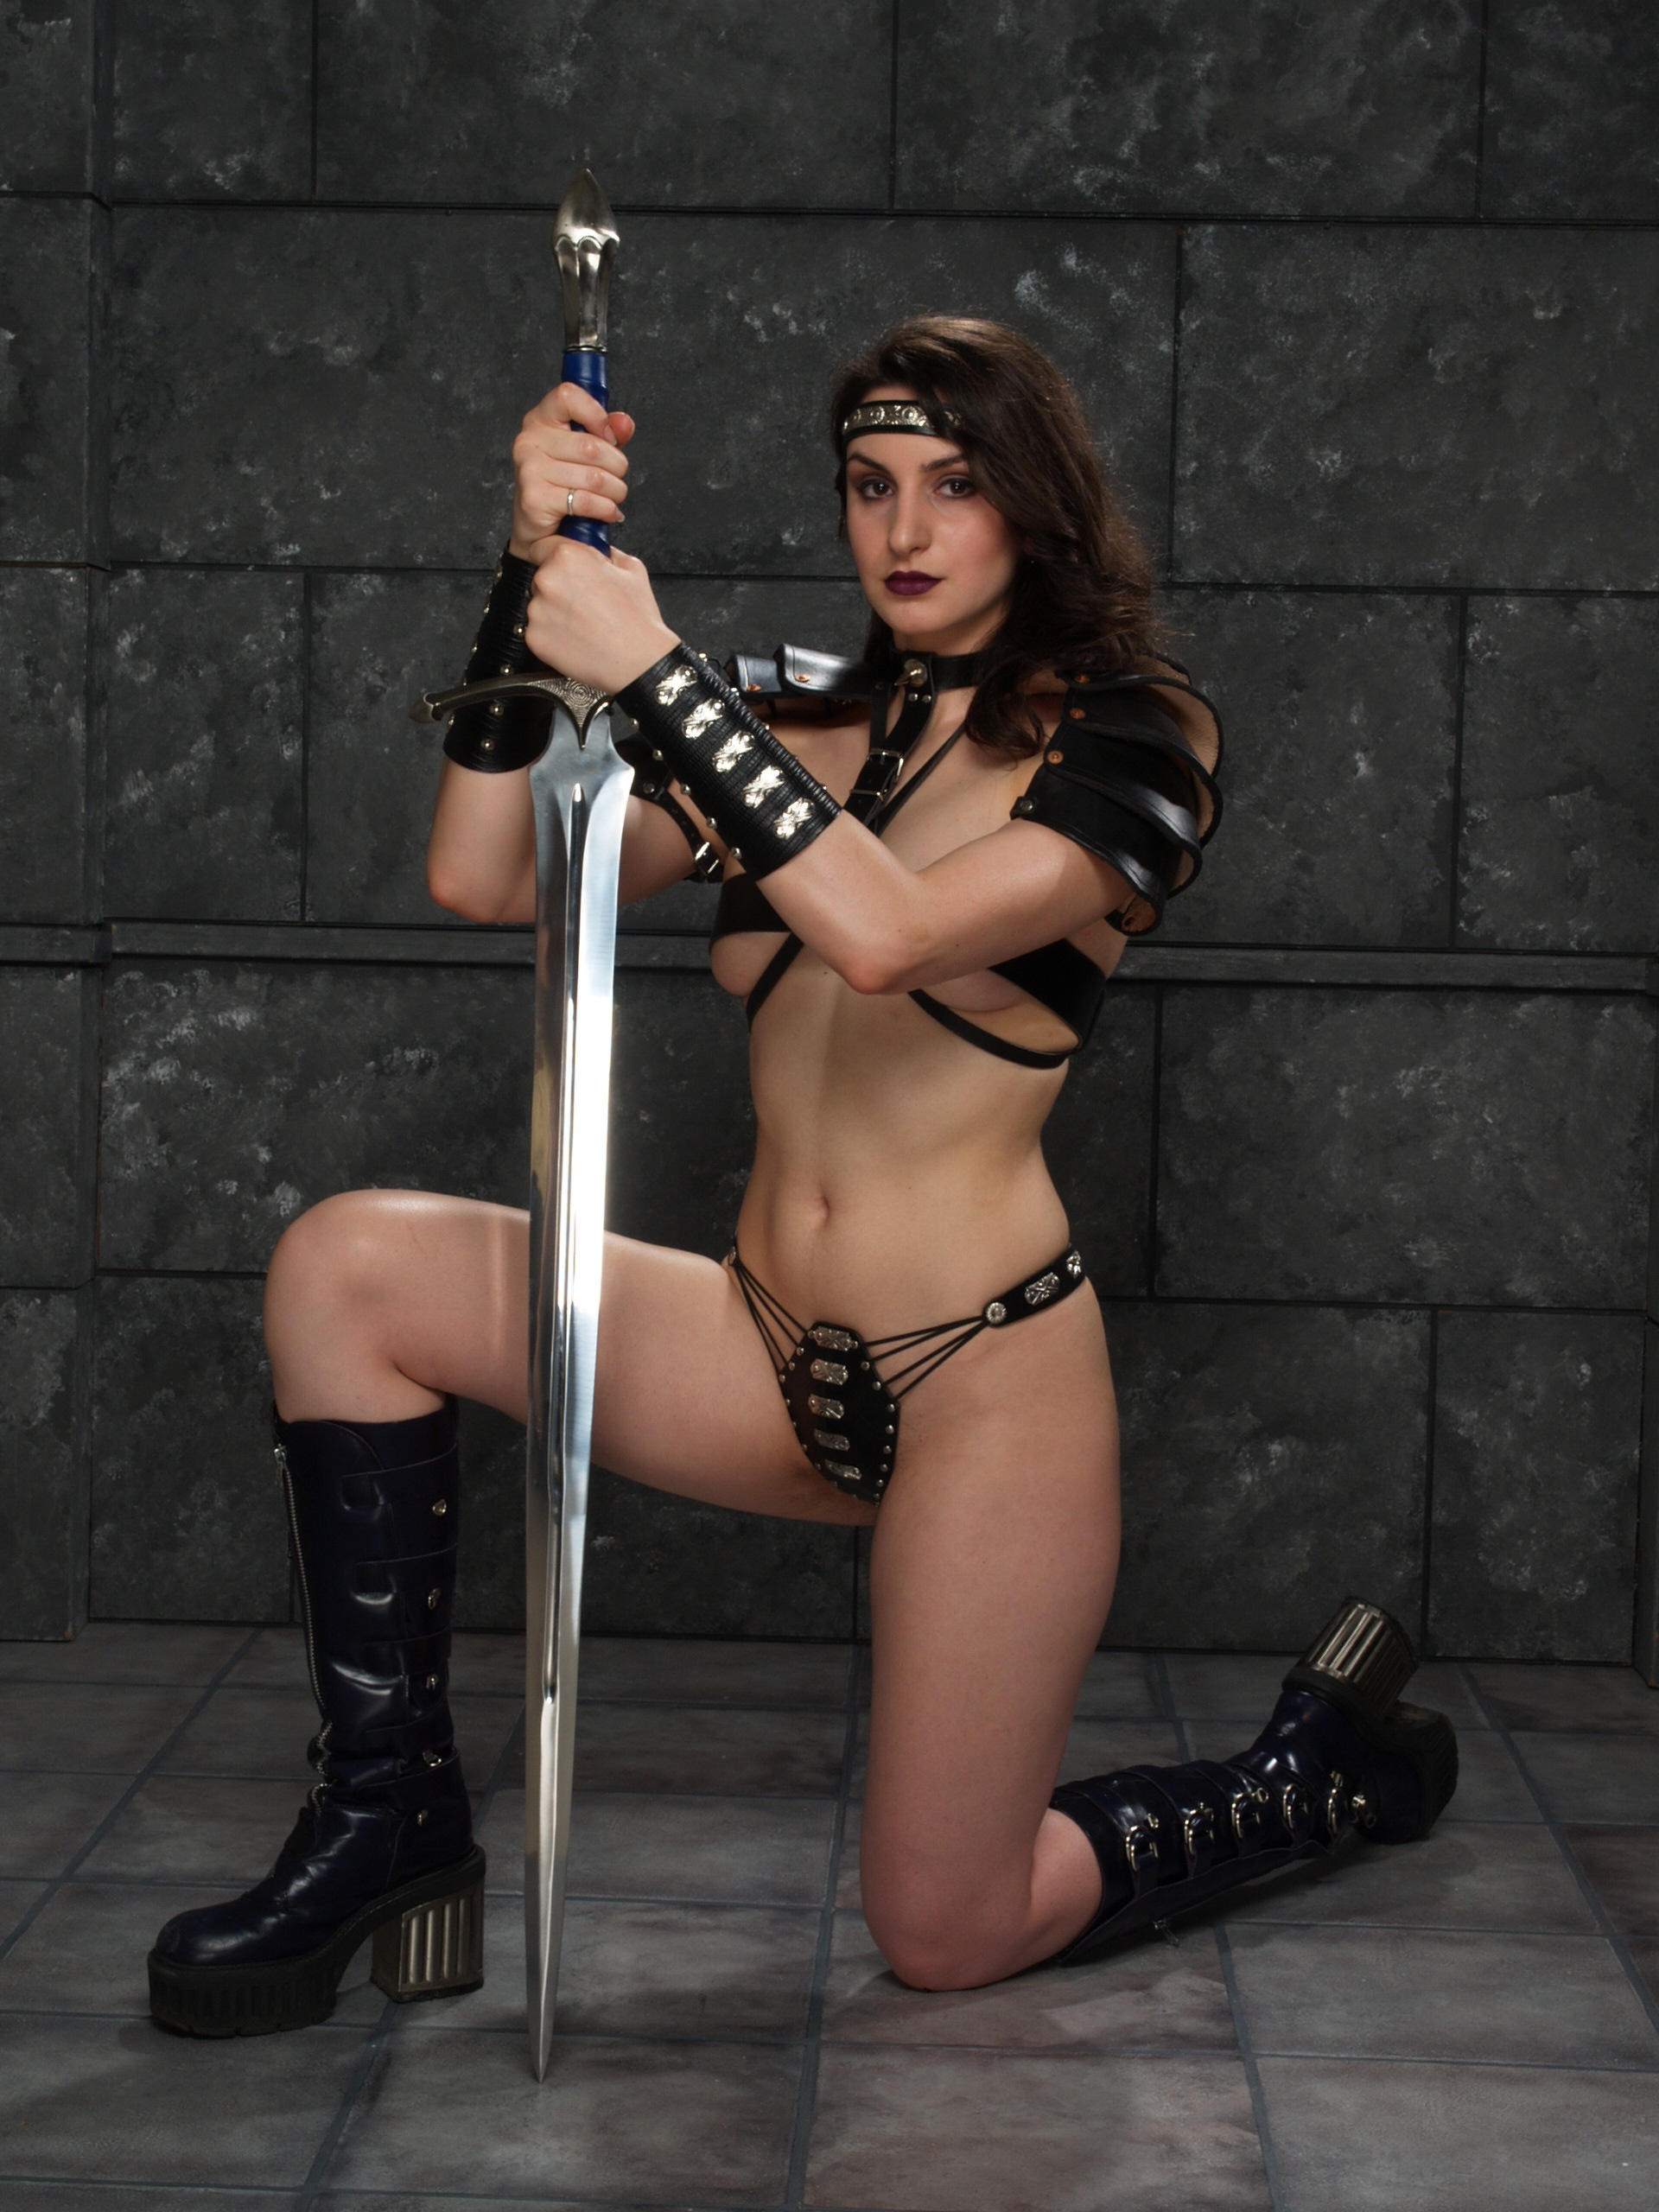 Warrior women fantasy fucked erotic gorgeous queen